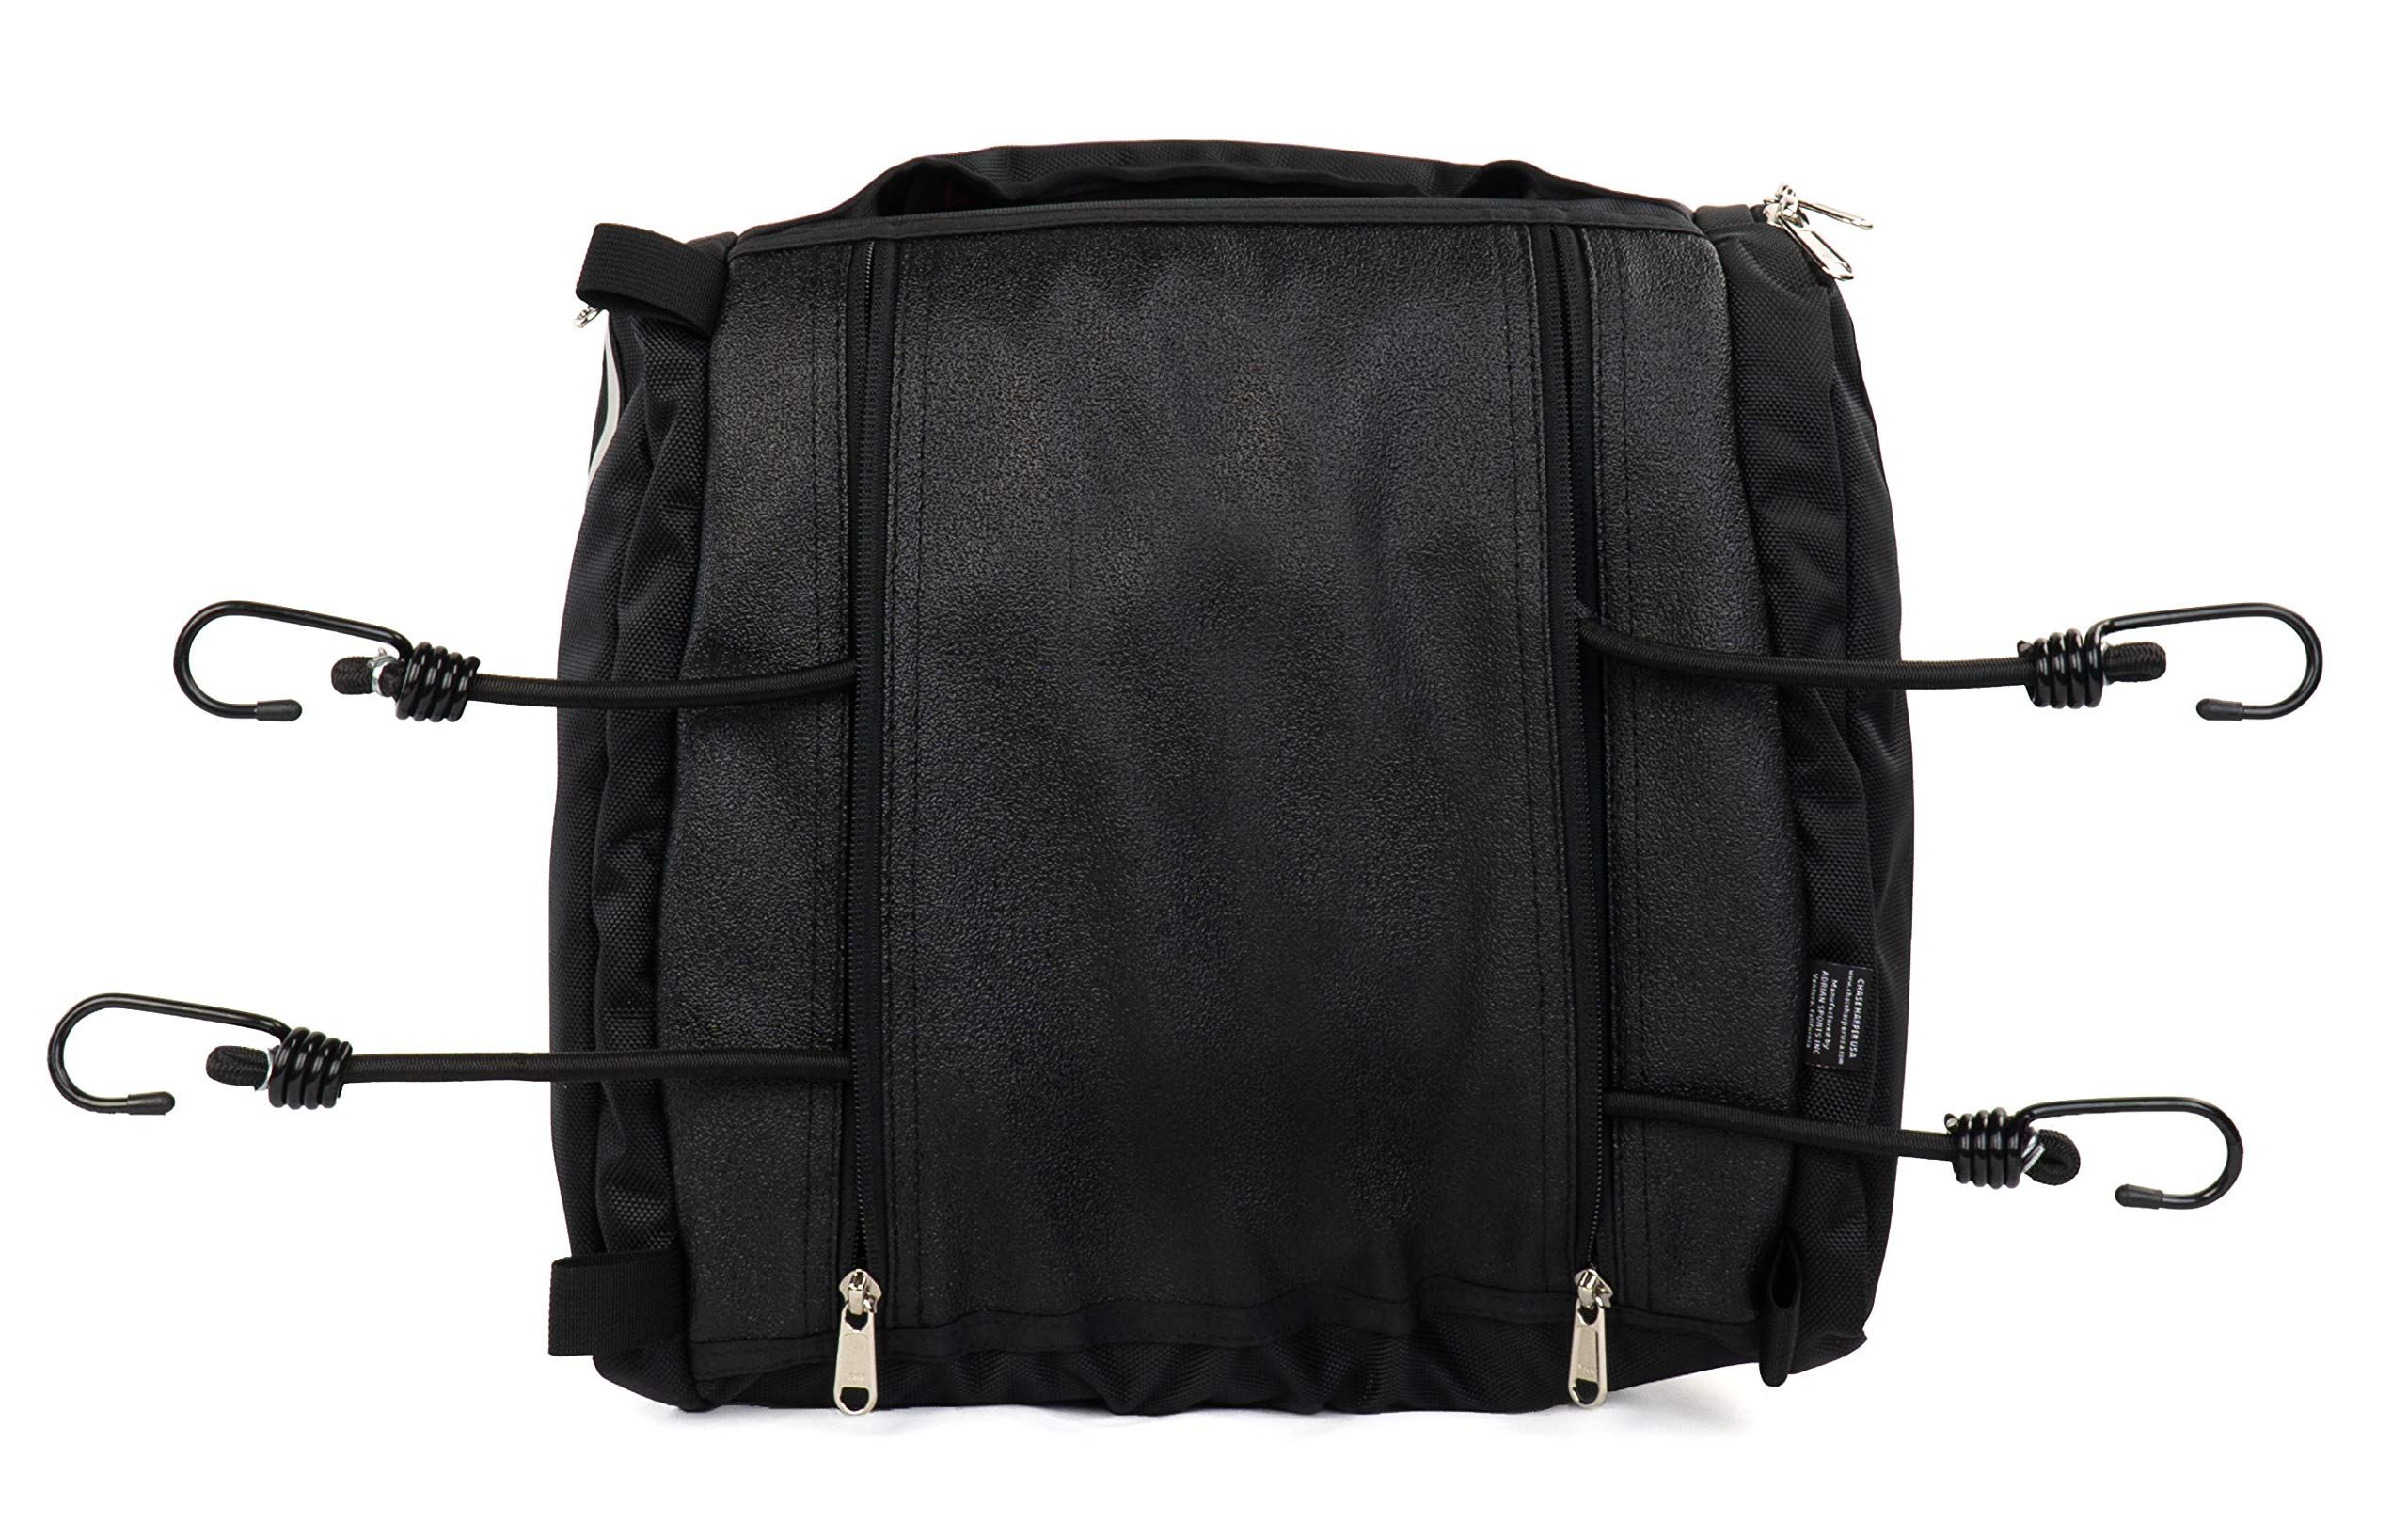 Chase Harper USA 4502 RipStream Tail Trunk - Water-Resistant, Tear-Resistant, Industrial Grade Ballistic Nylon with Adjustable Bungee Mounting System for Universal Fit, 13.5''L x 14''W x 7''H